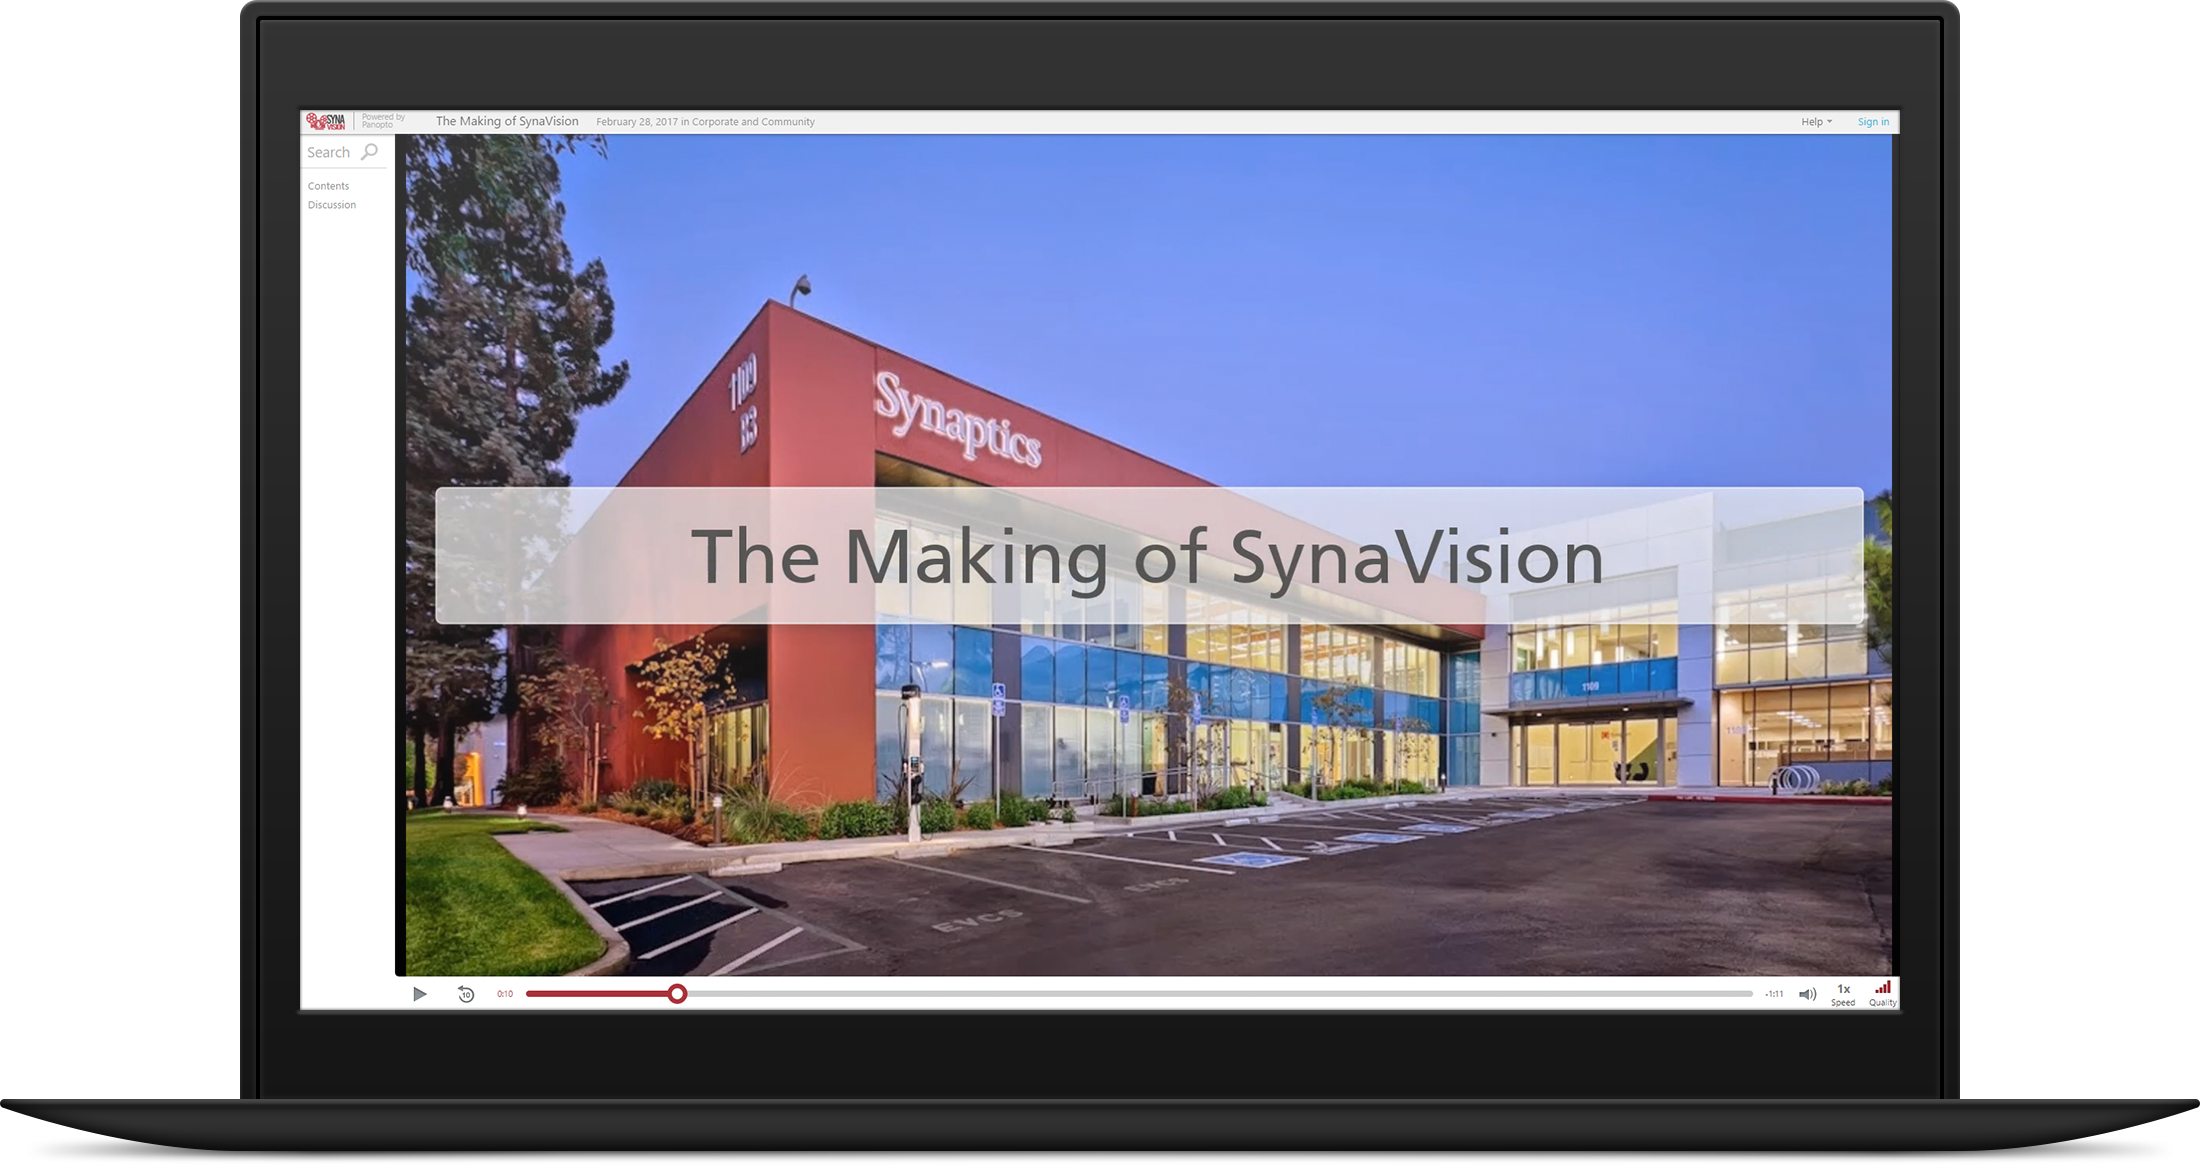 Synaptics created SynaVision with Panopto to more effectively manage proprietary knowledge